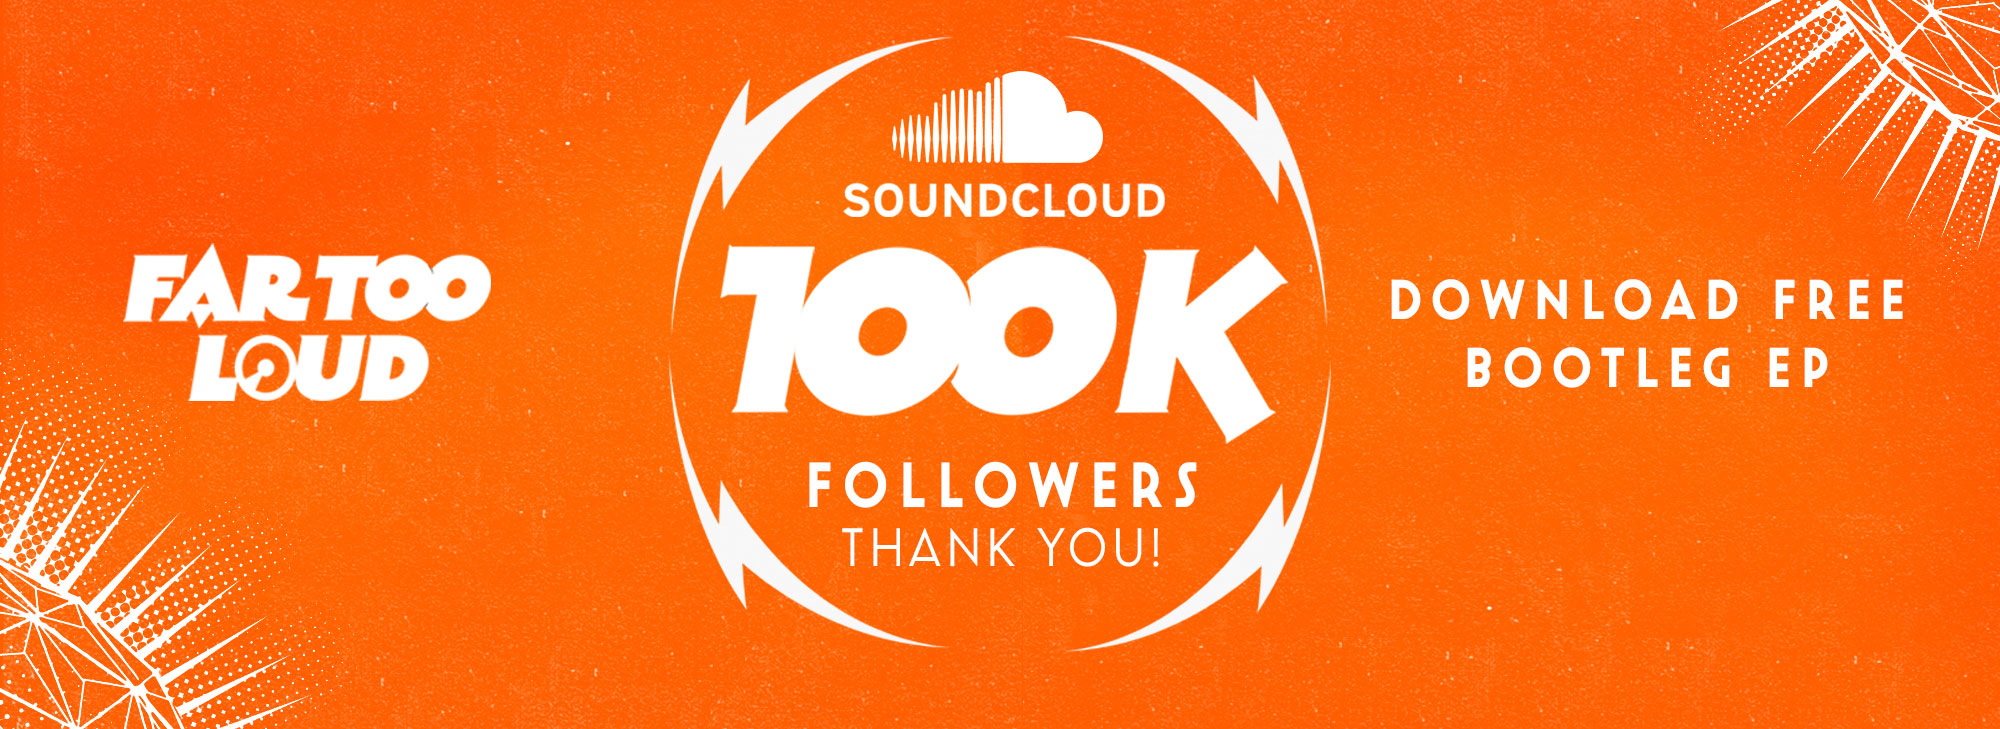 100k_soundcloud_banner_2000_web